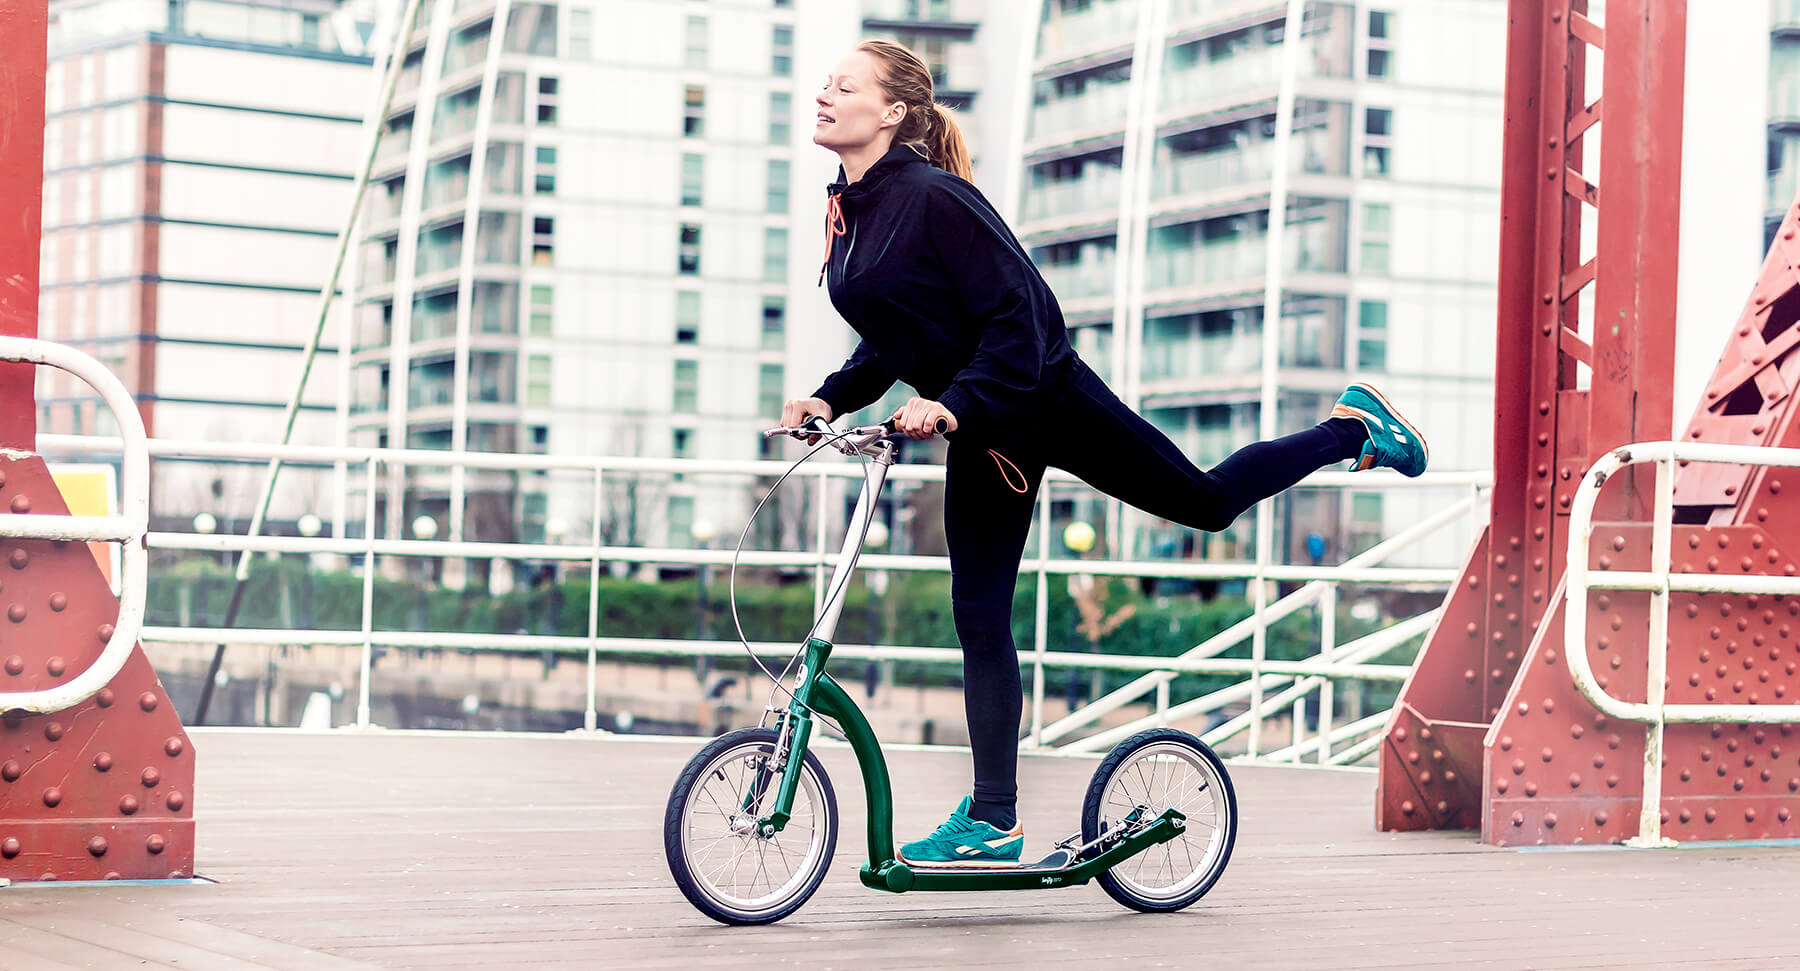 best scooter for commuting, scooters with big wheels, scooter with big wheels